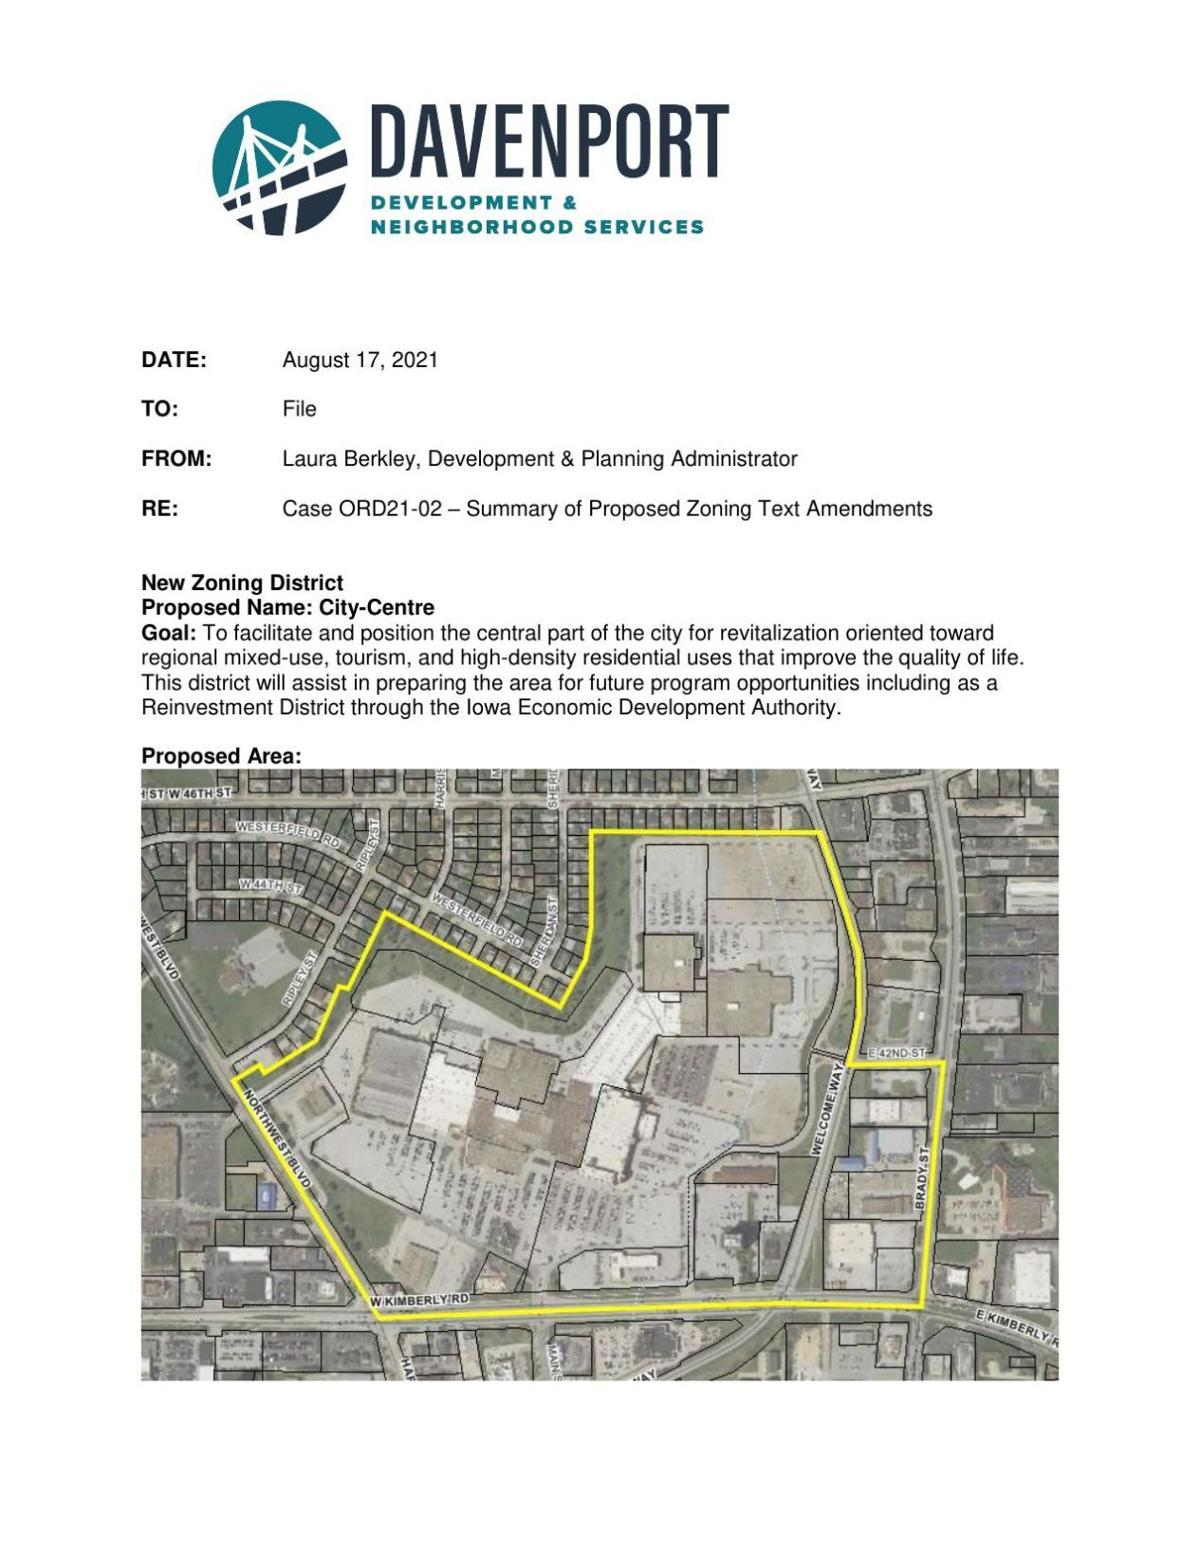 MEMO - New NorthPark Mall zoning district